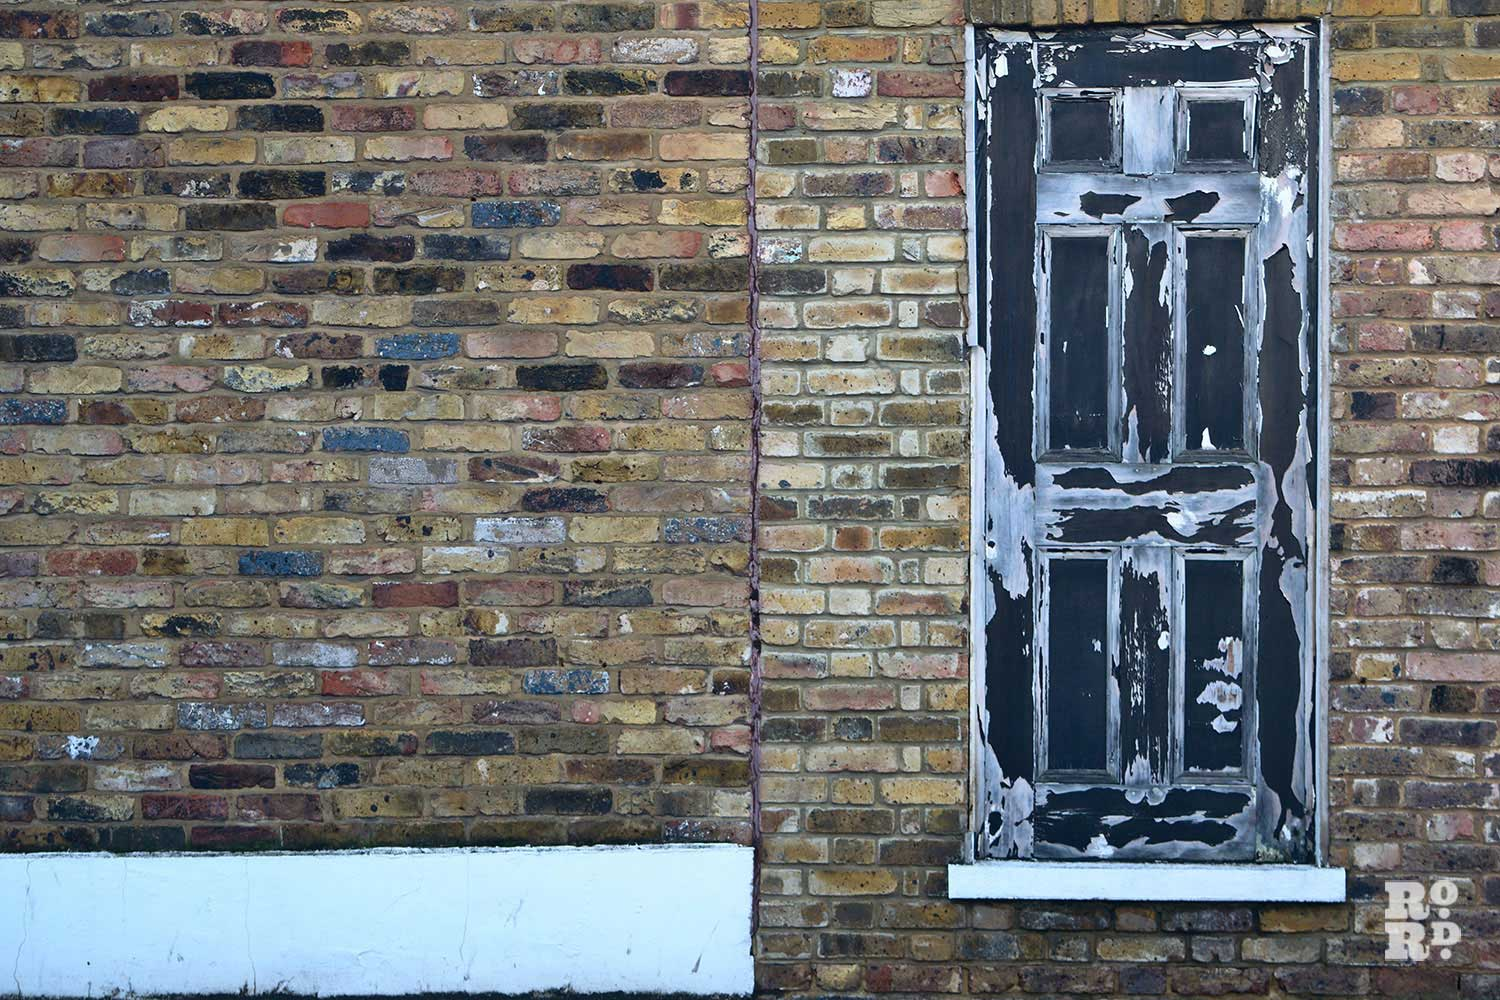 The magic door of Mile End, Coborn Street